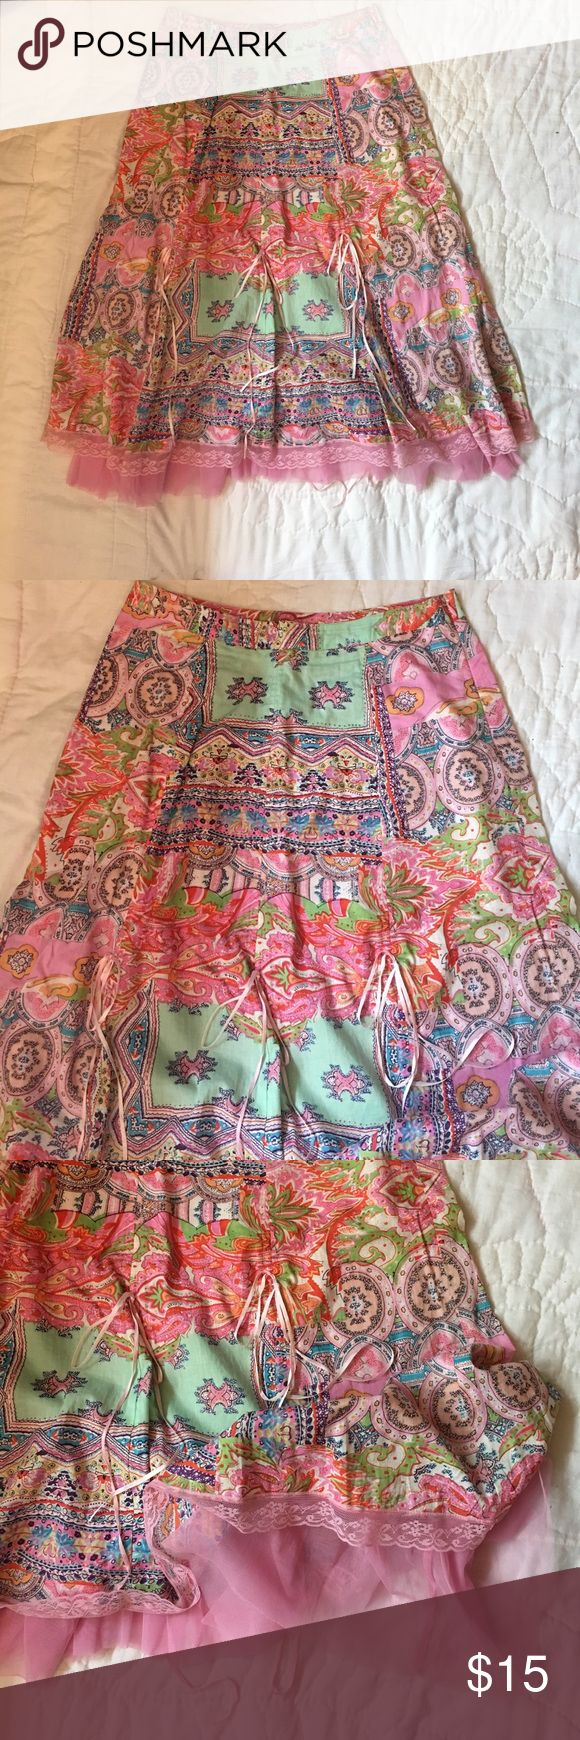 """April Cornell full skirt Beautiful full skirt with multi color pinks, greens & blues! Pink lace trim with pink ruffles at trim, lined with cotton underneath. Waist is 16"""", with zipper on side. Waist to hem is 28"""" April Cornell Skirts A-Line or Full"""